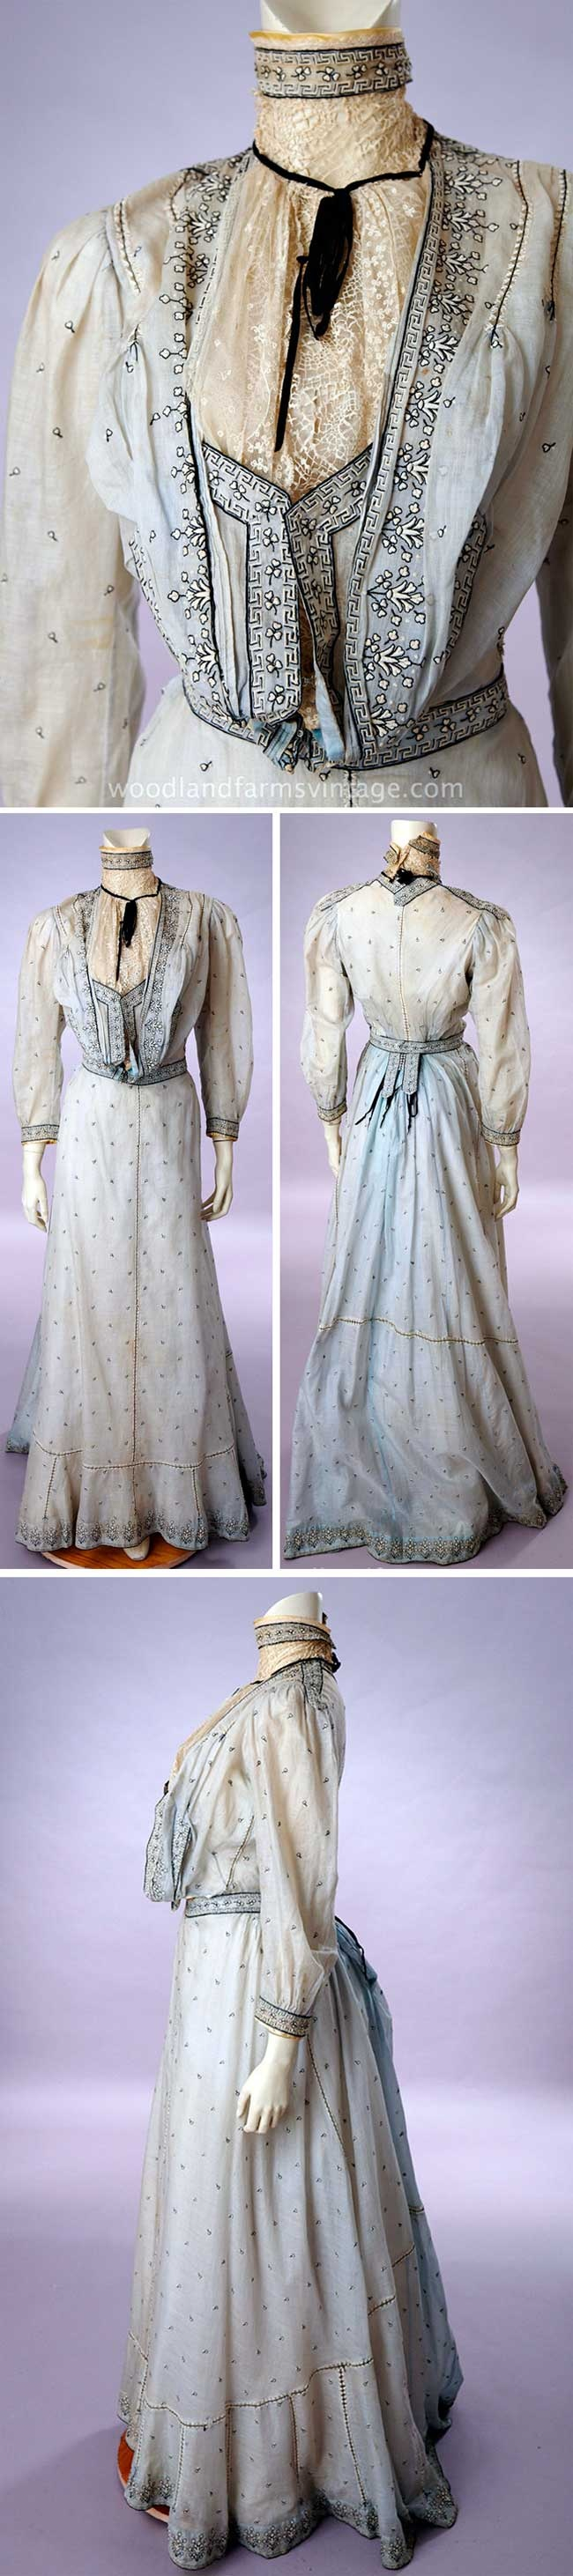 Pale blue 2-piece pigeon waist dress, no date. Boned cotton camisole closing w/hooks at center front. Lace collar & jabot hook onto camisole. Blue cotton lawn outer waist hooks below jabot for vestee effect. Narrow black velvet ribbon at collar with bow. Bodice front heavily decorated w/embroidery & clocking. Long, sheer narrow sleeves have narrow cuff w/matching embroidery. White cotton petticoat w/narrow ruffles. Skirt has matching handwork in black & ivory, & clocking. Woodland Farms…